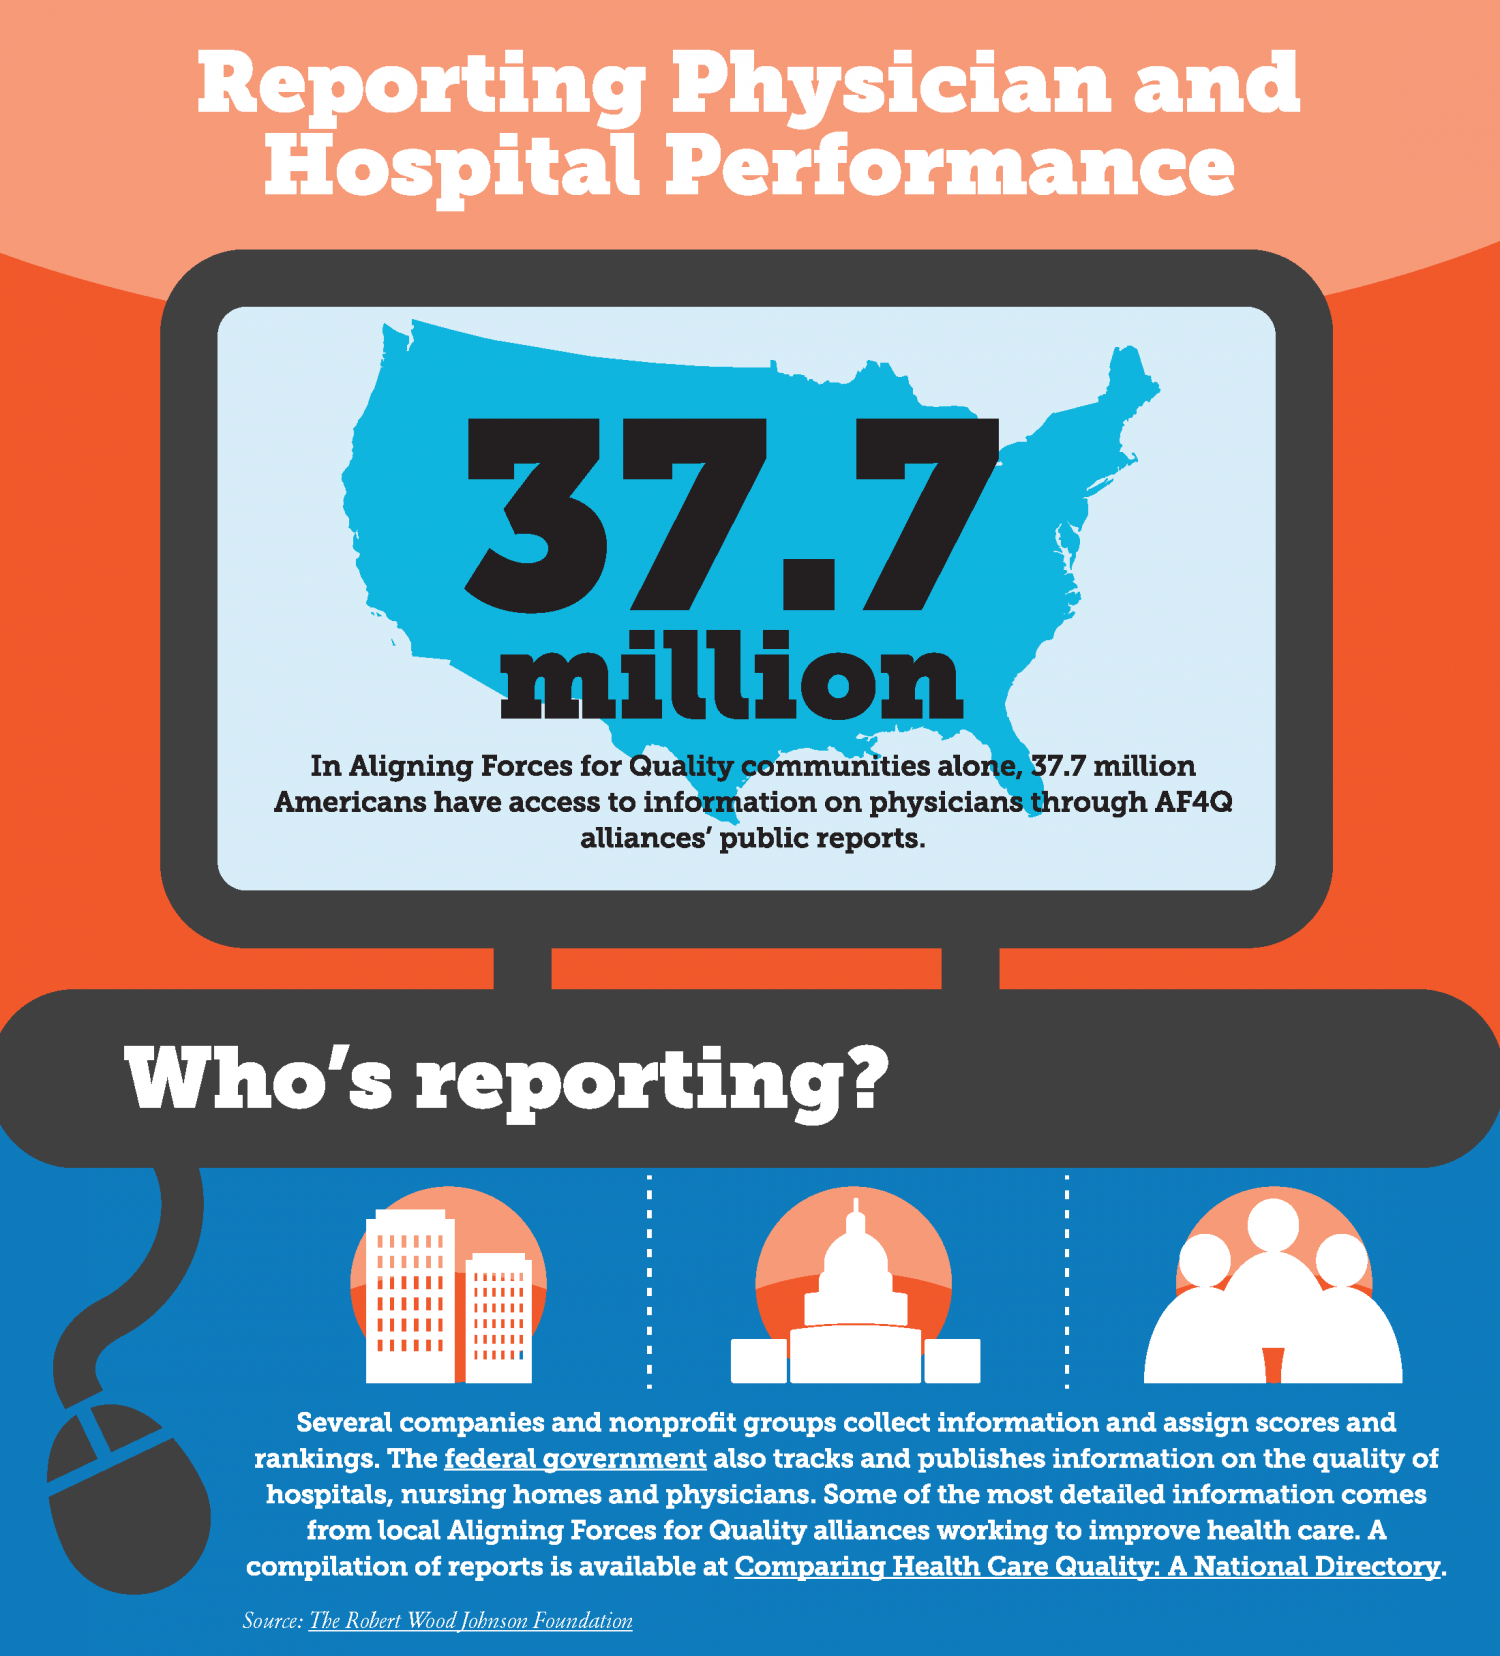 Reporting Physician and Hospital Performance Infographic